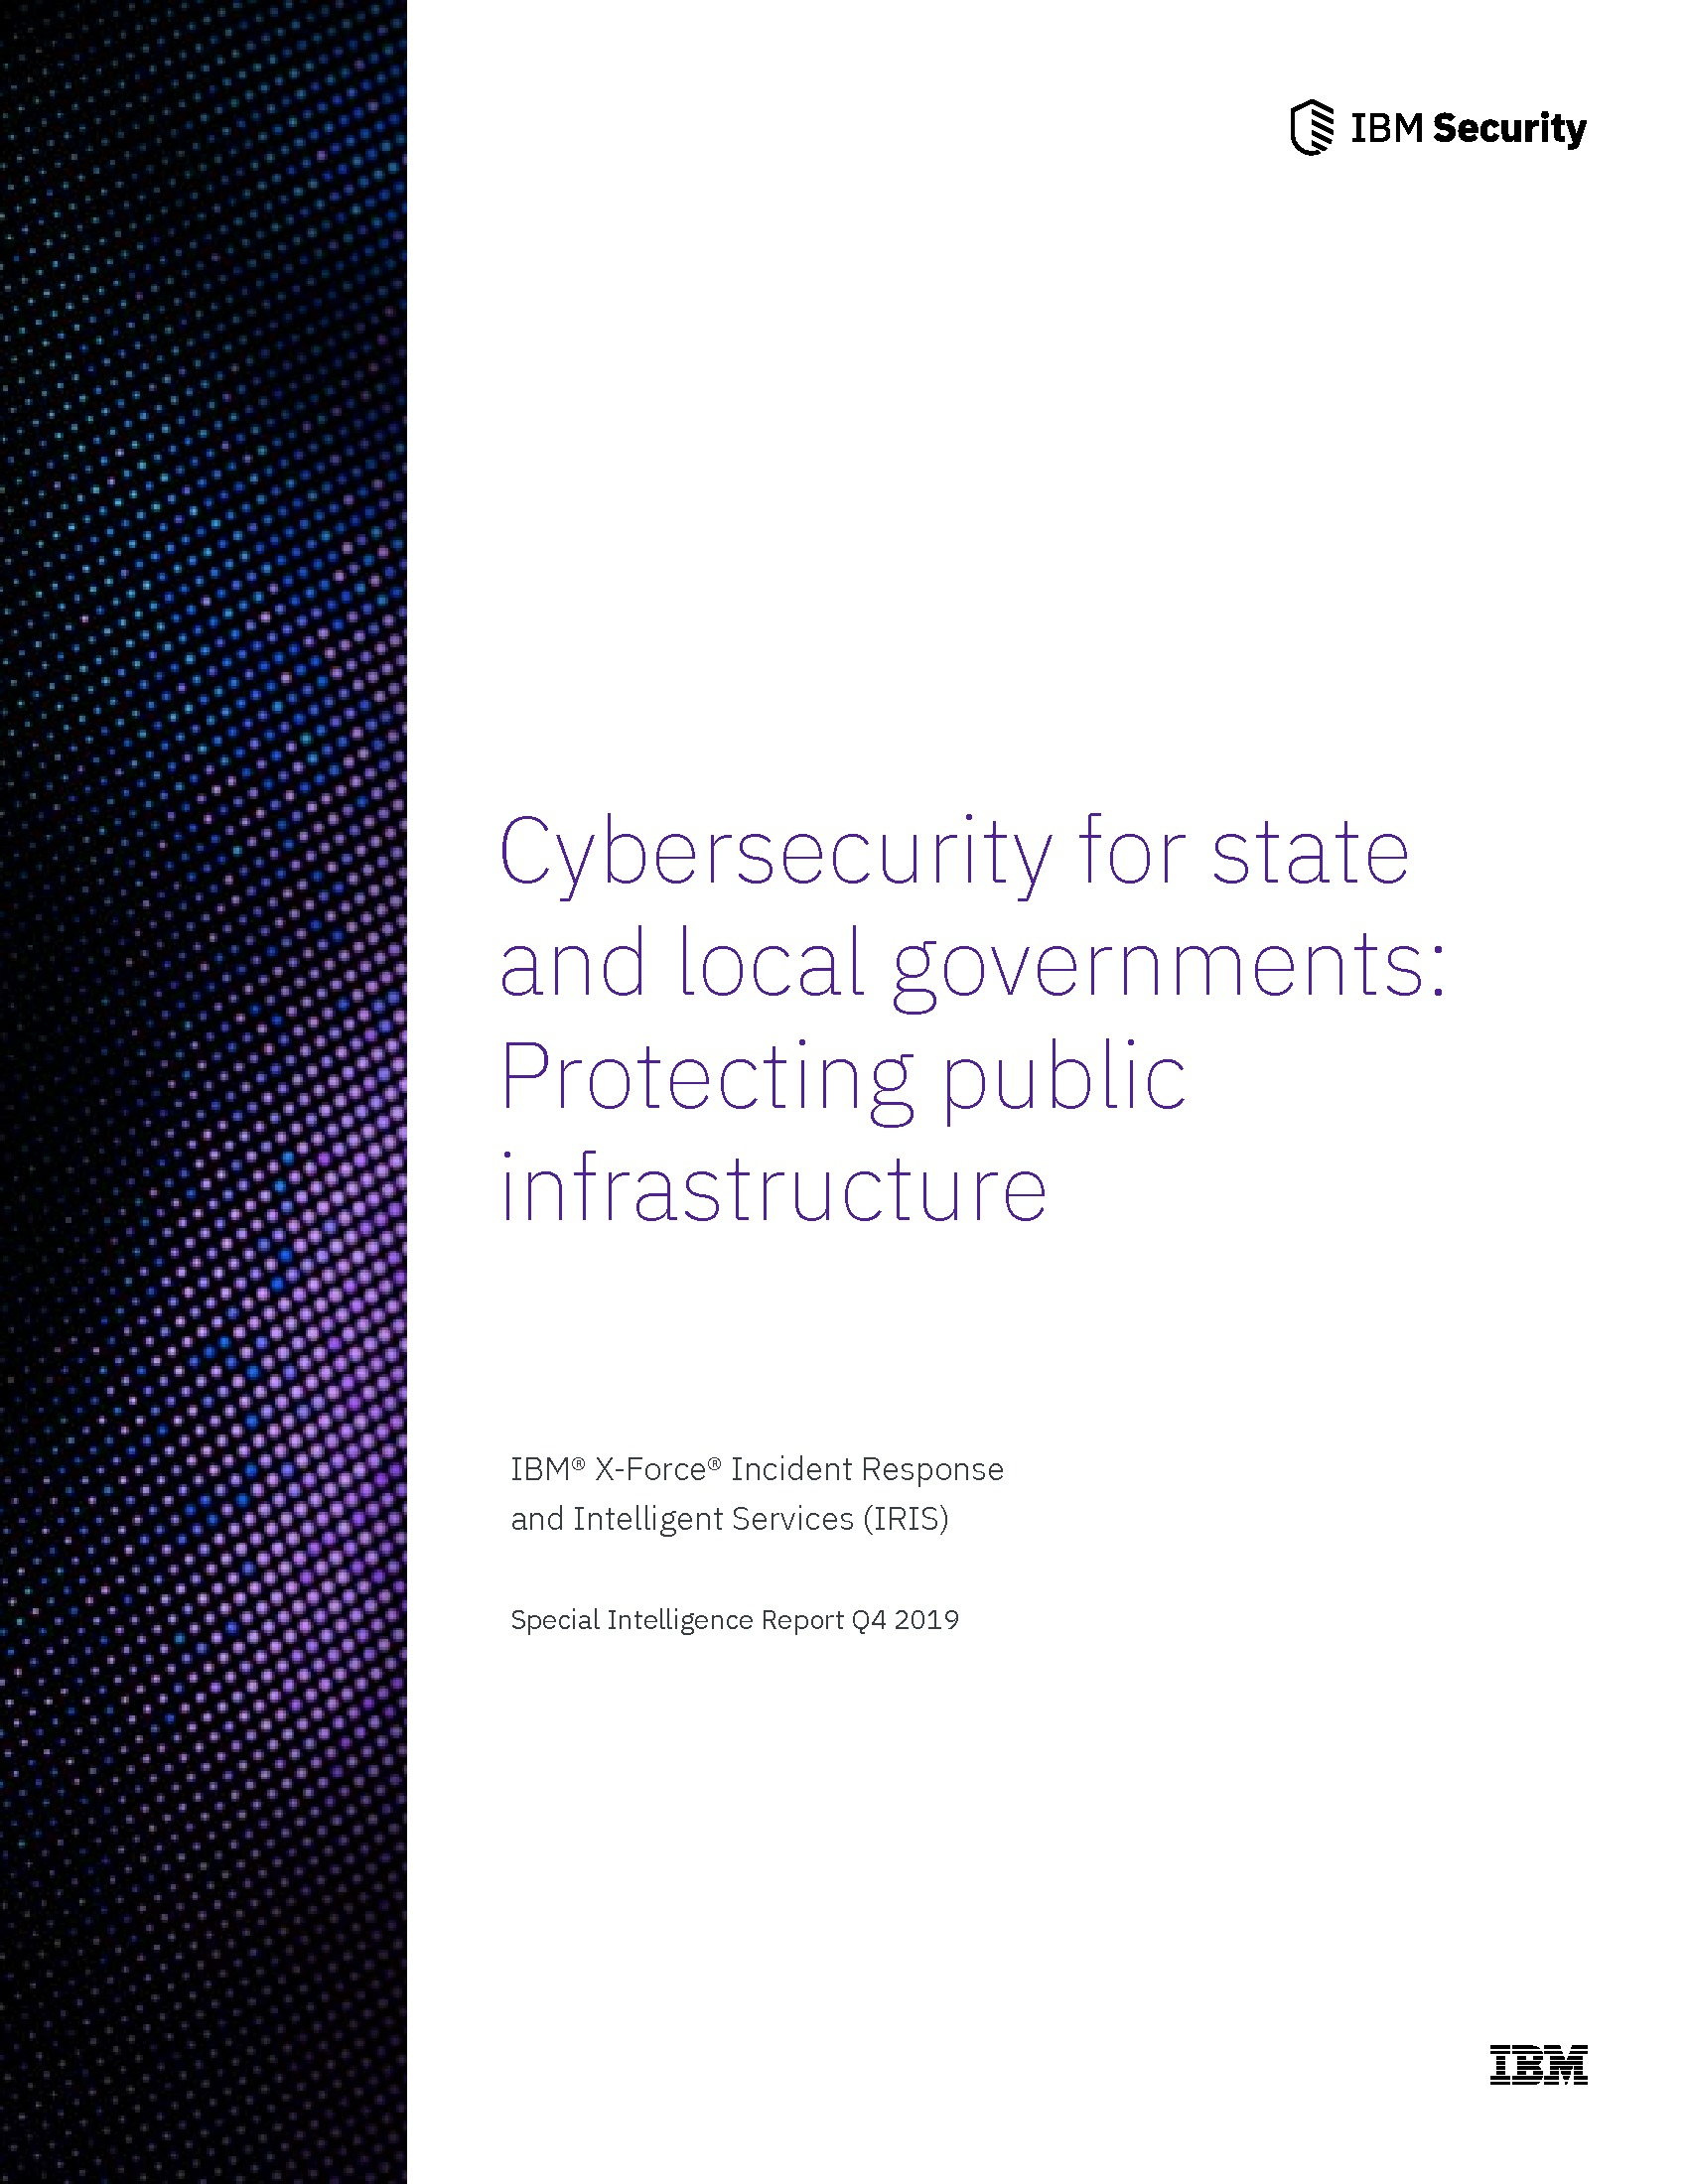 Cybersecurity for State and Local Governments: Protecting Public Infrastructure